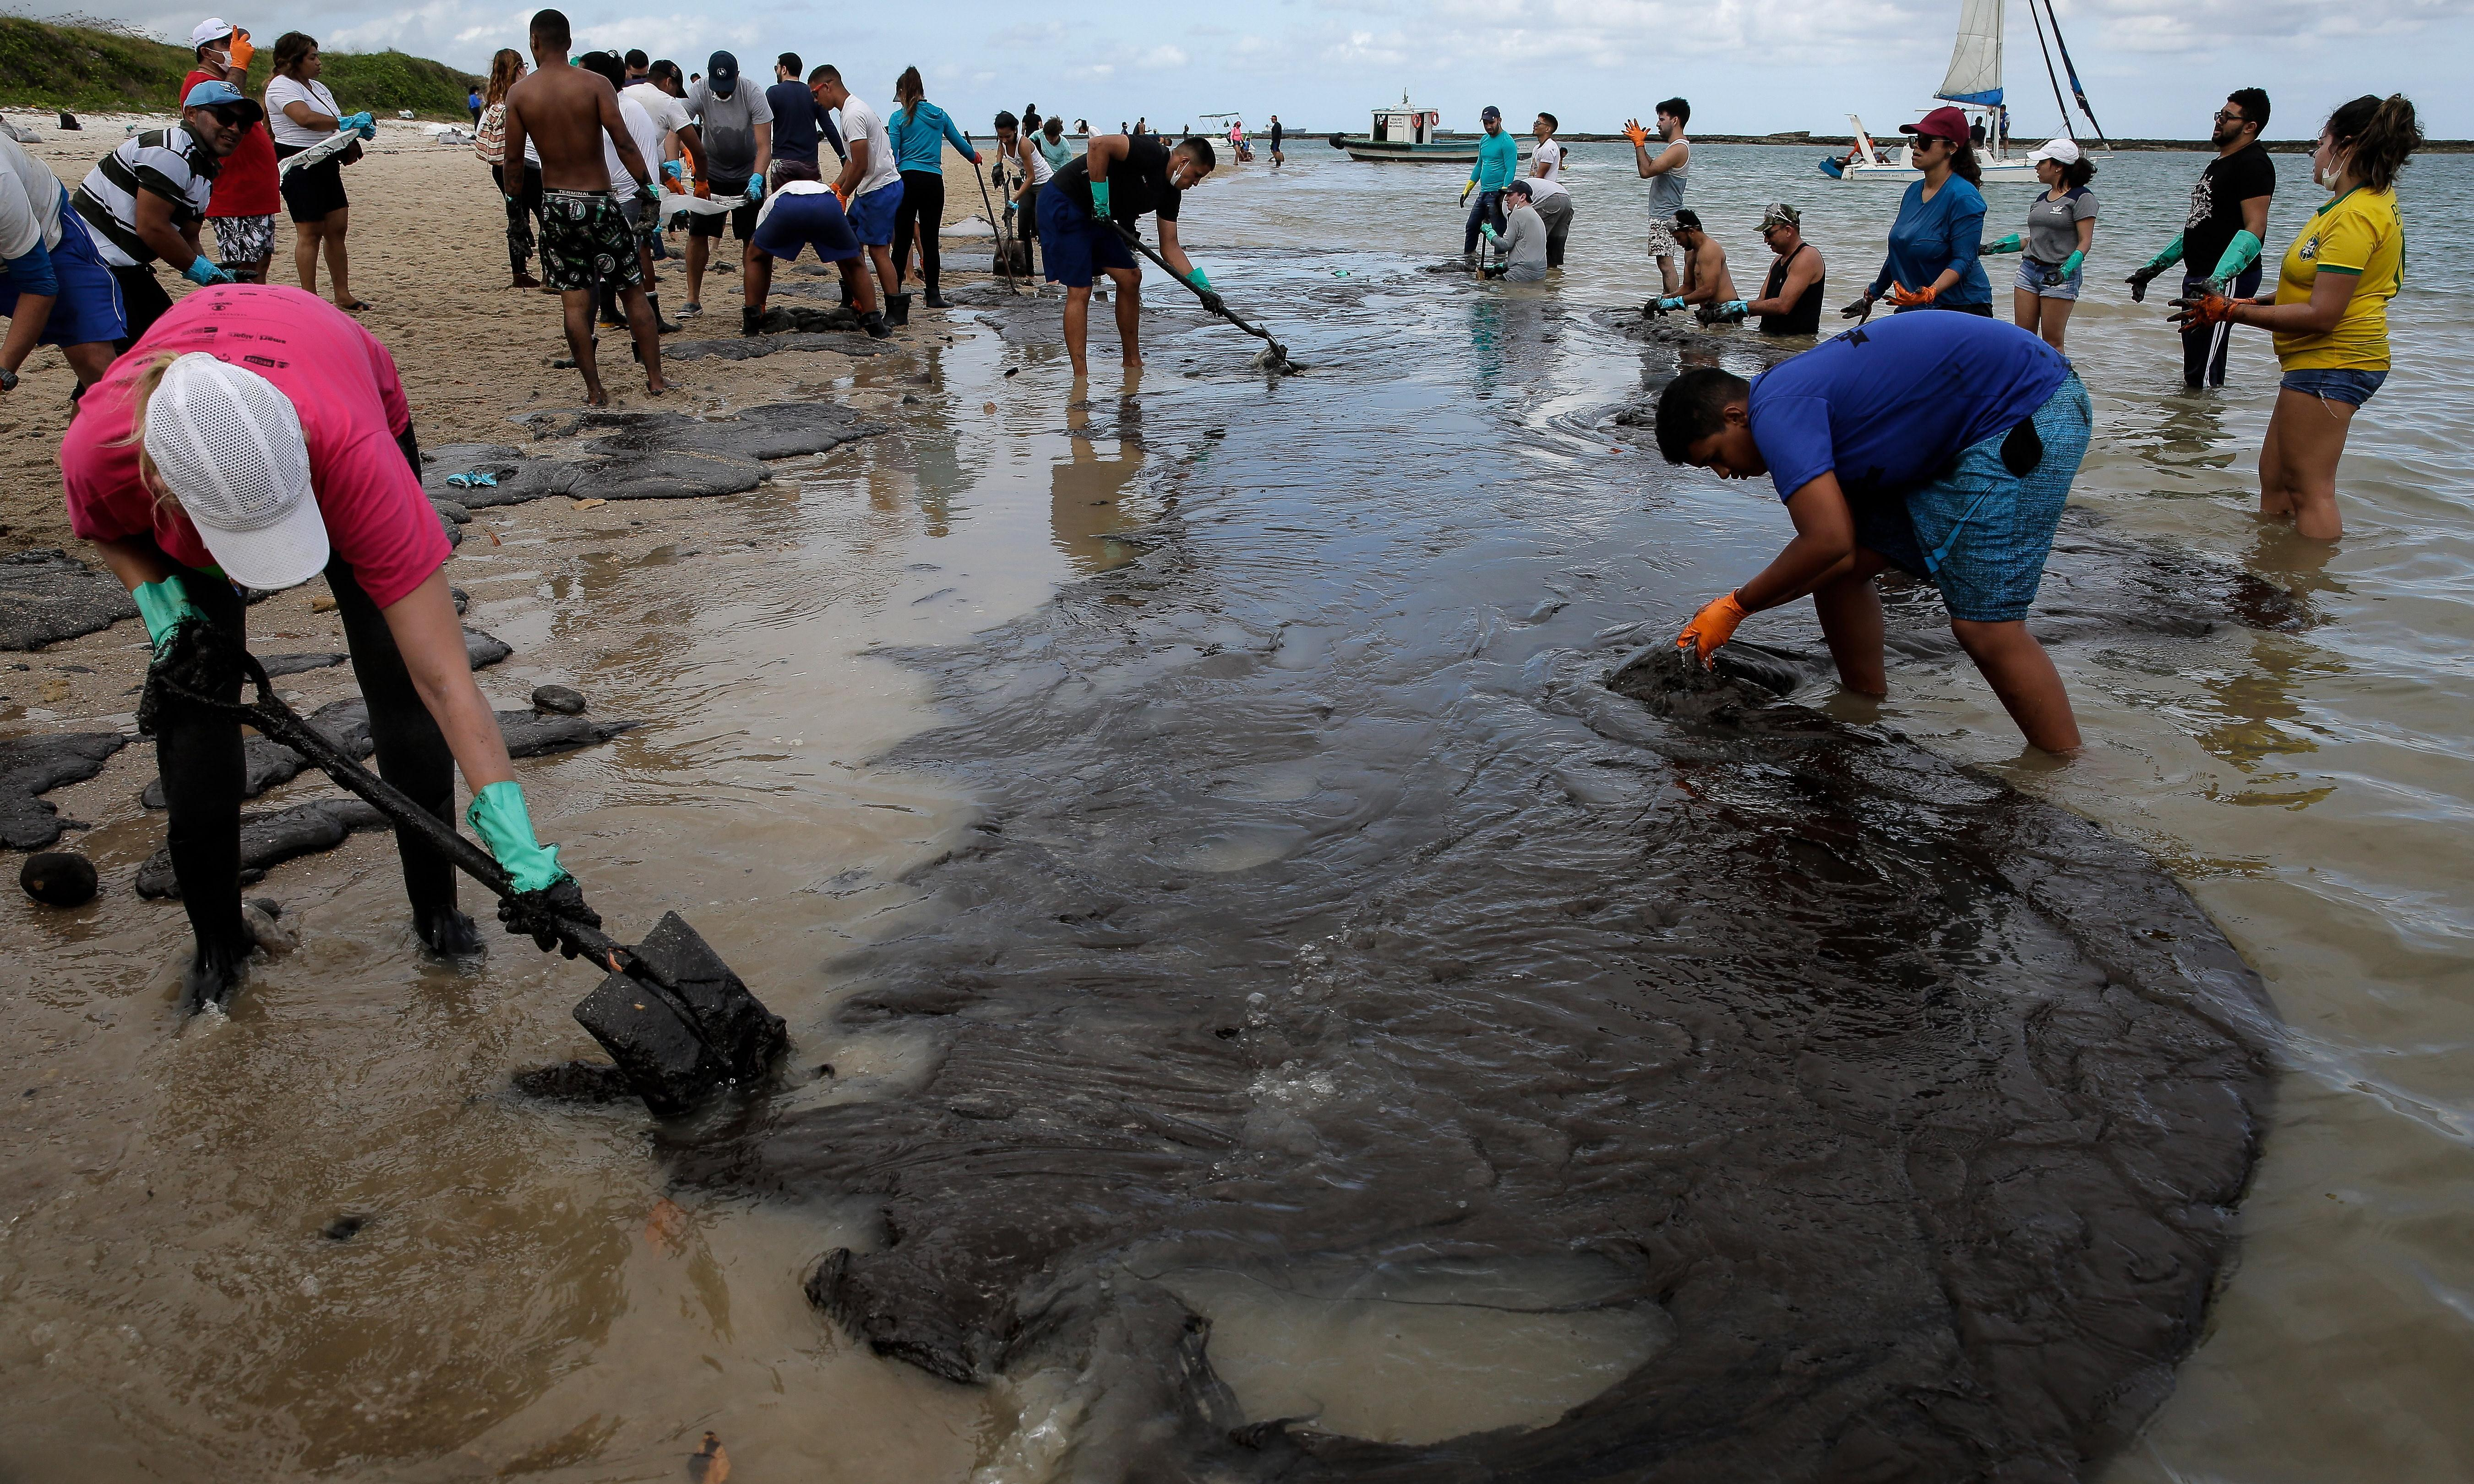 Brazilians rally to clean beaches amid outrage at Bolsonaro's oil spill inaction